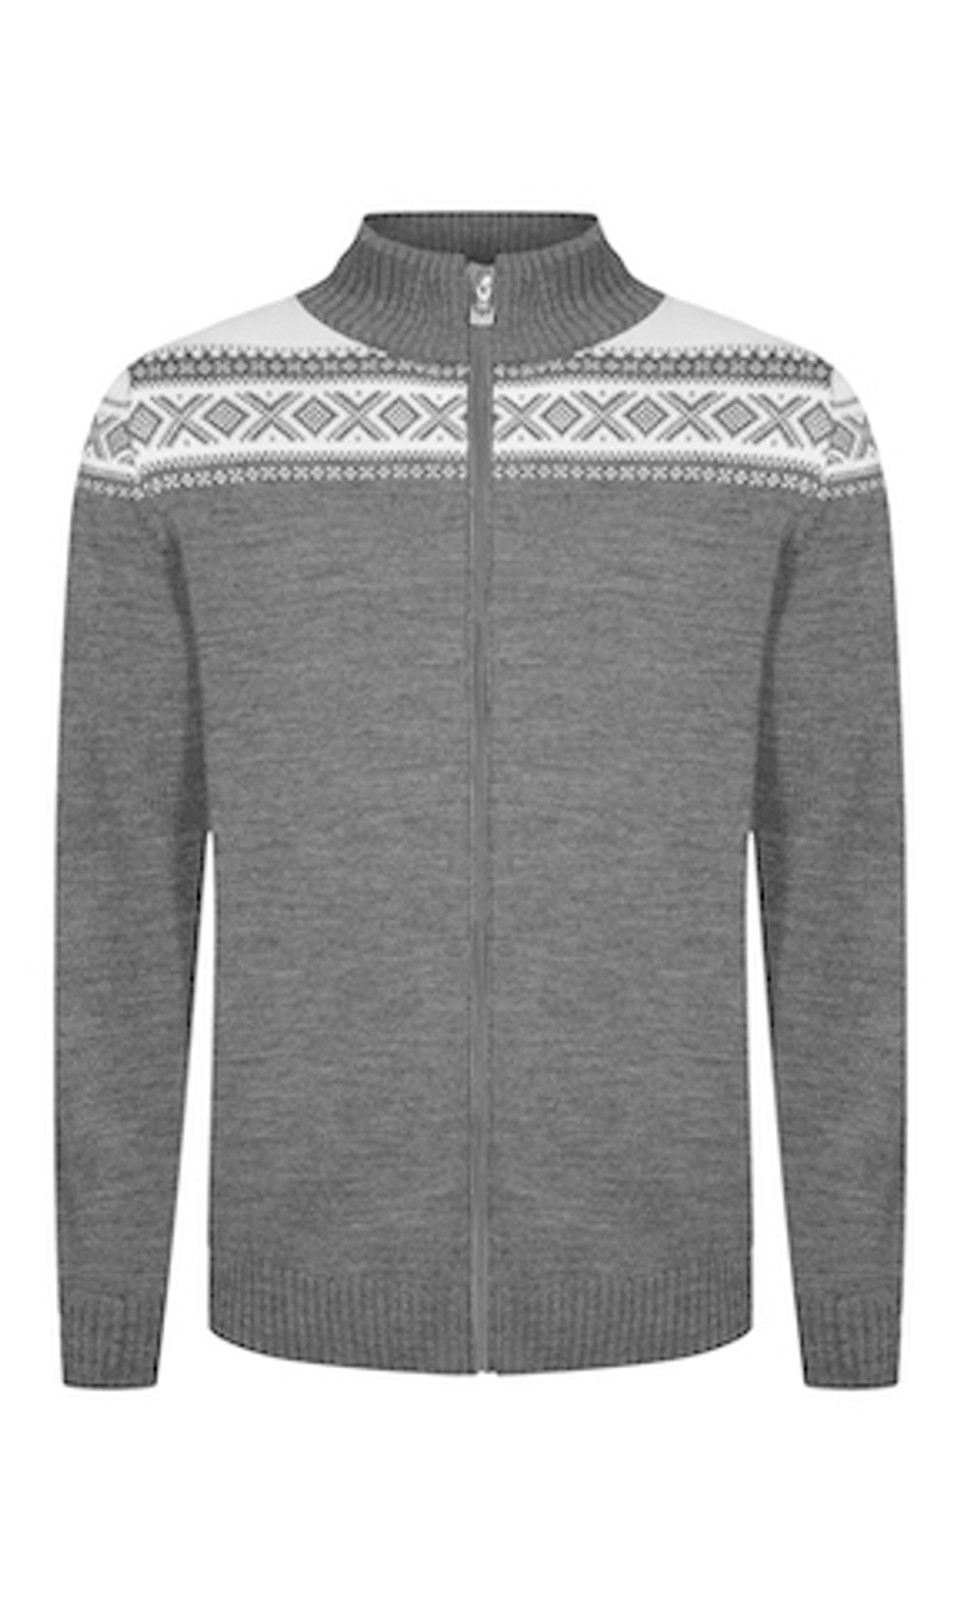 Dale of Norway Cortina Merino Cardigan, Men's - Smoke/Off-White, 83321-E